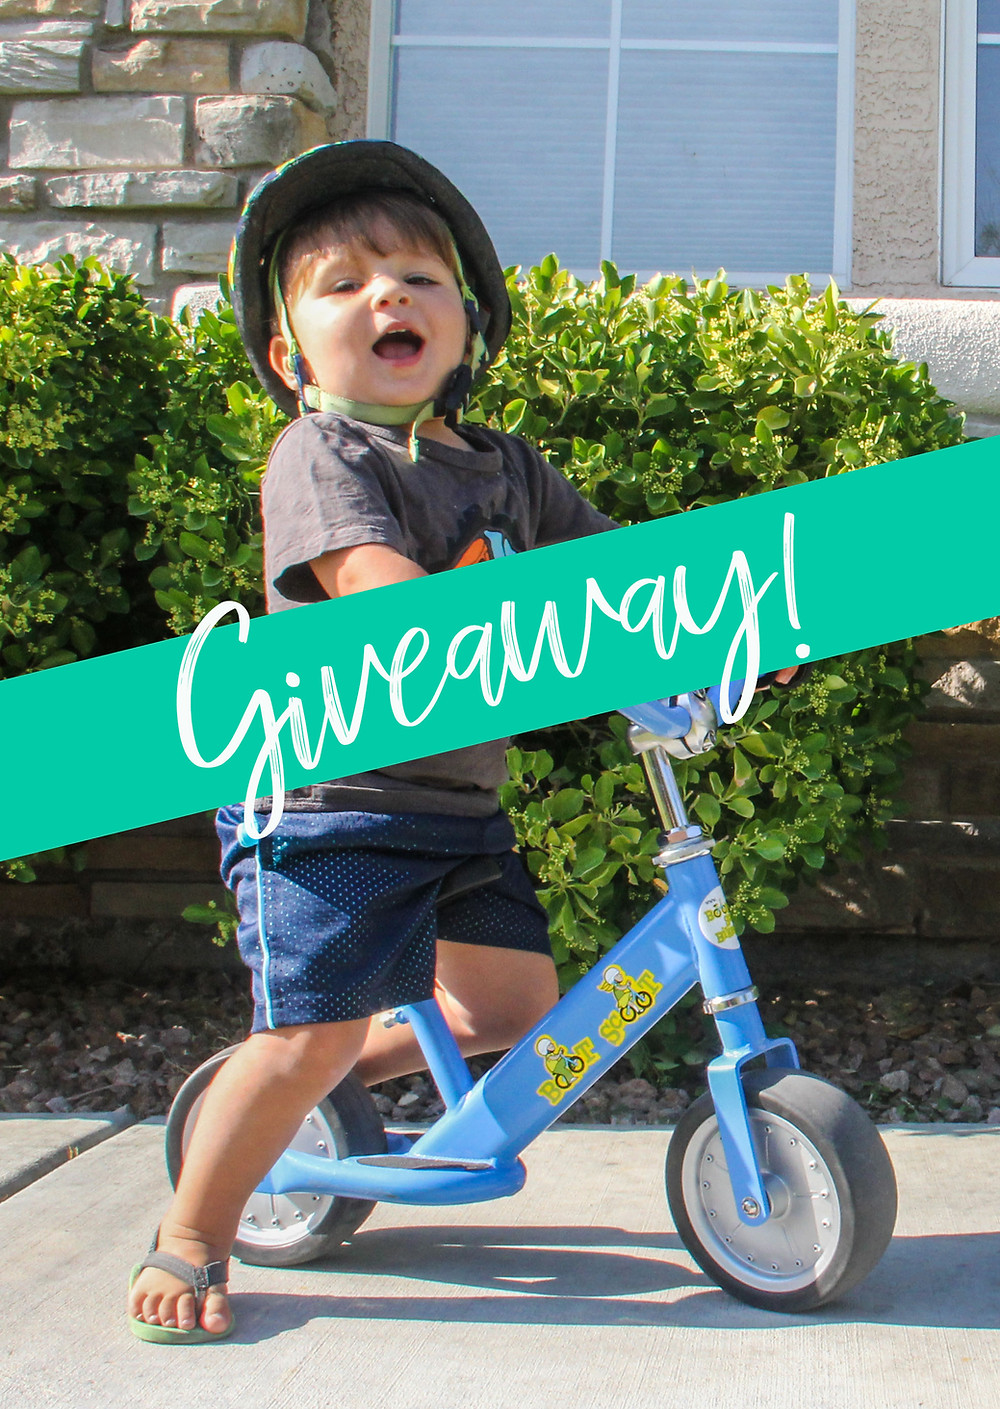 Born a Backpackers first giveaway. A new balance bike.